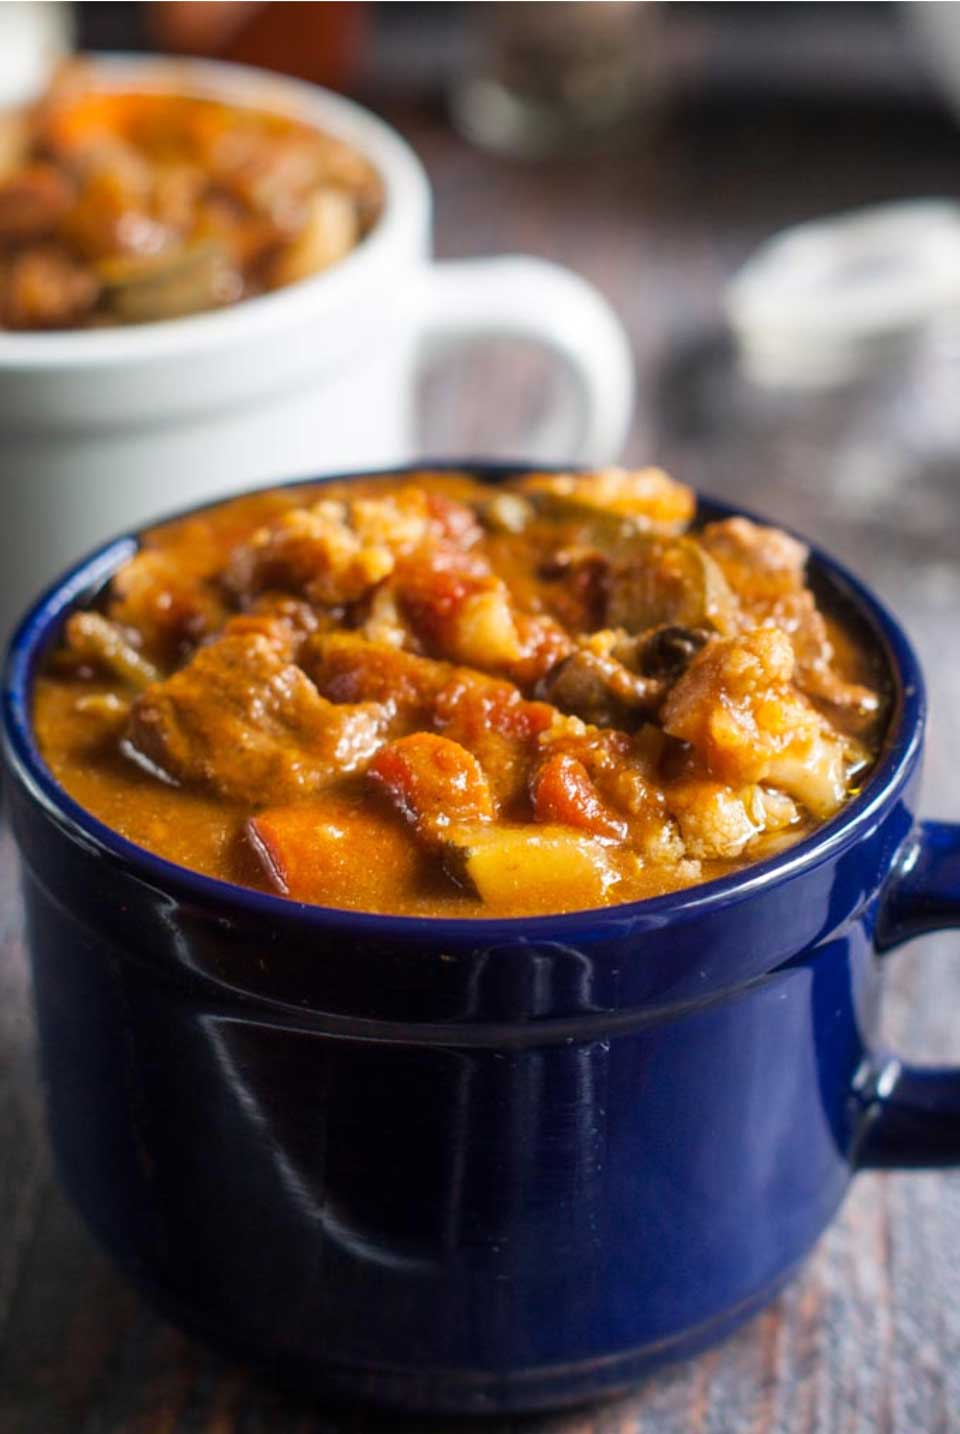 Looking for a healthier comfort food recipe? We've got tips and recipes to turn traditional beef stew into a healthier option – including this Nourishing Beef Stew in the Instant Pot from Denise at My Life Cookbook.